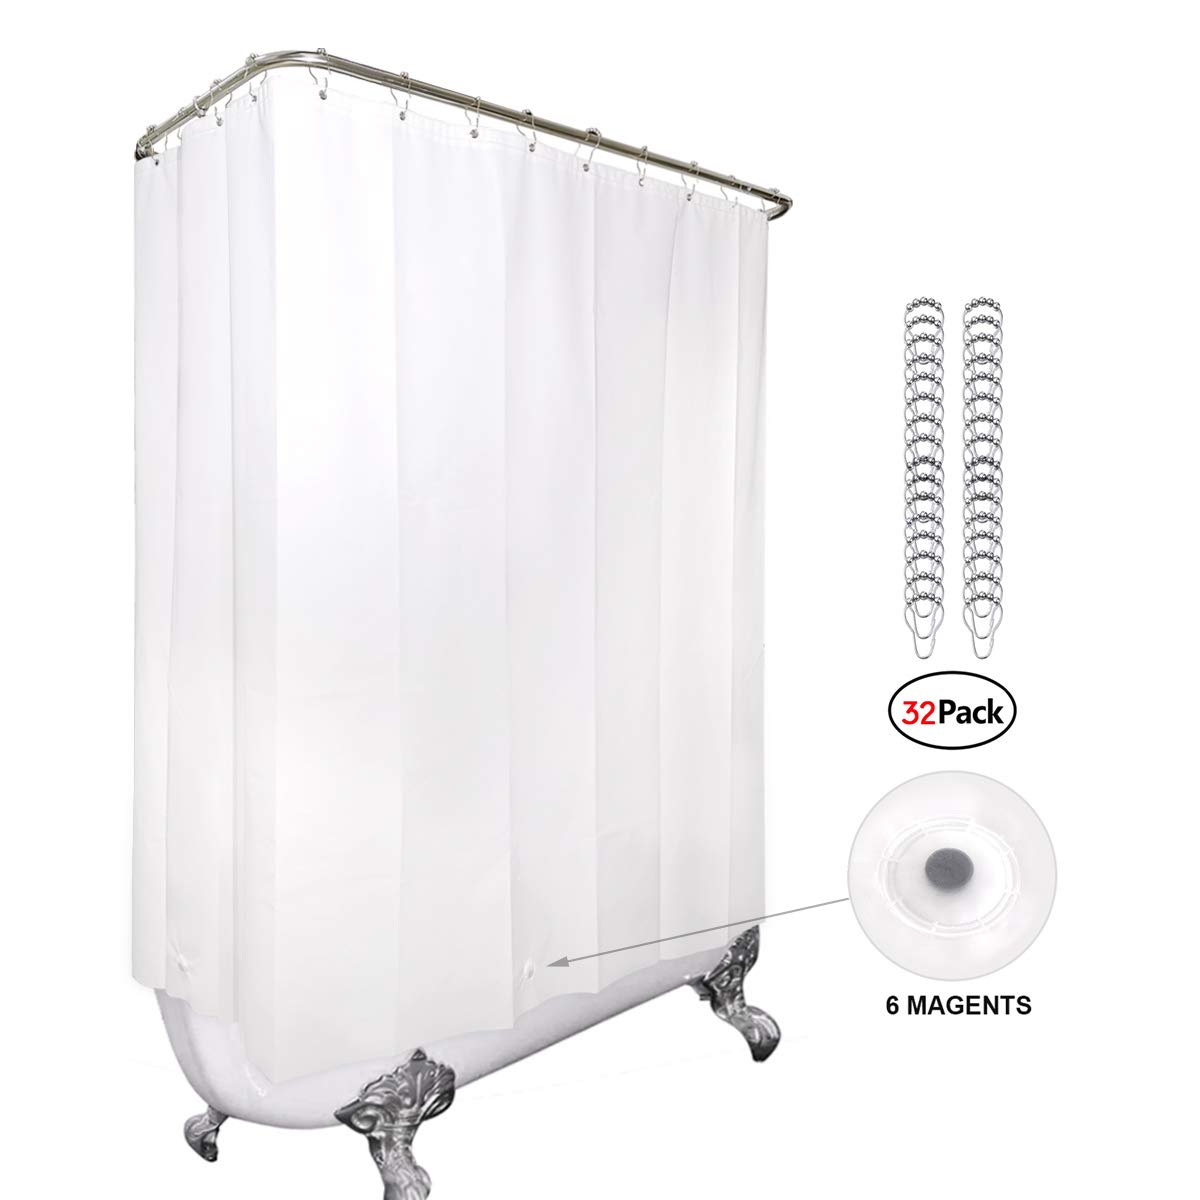 White All Around Shower Curtain 180x70 Inches with Magnets Clawfoot Tub PEVA Extra Wide Wrap Around Panel Set 32 Pack Shower Hooks Included Heavy Duty